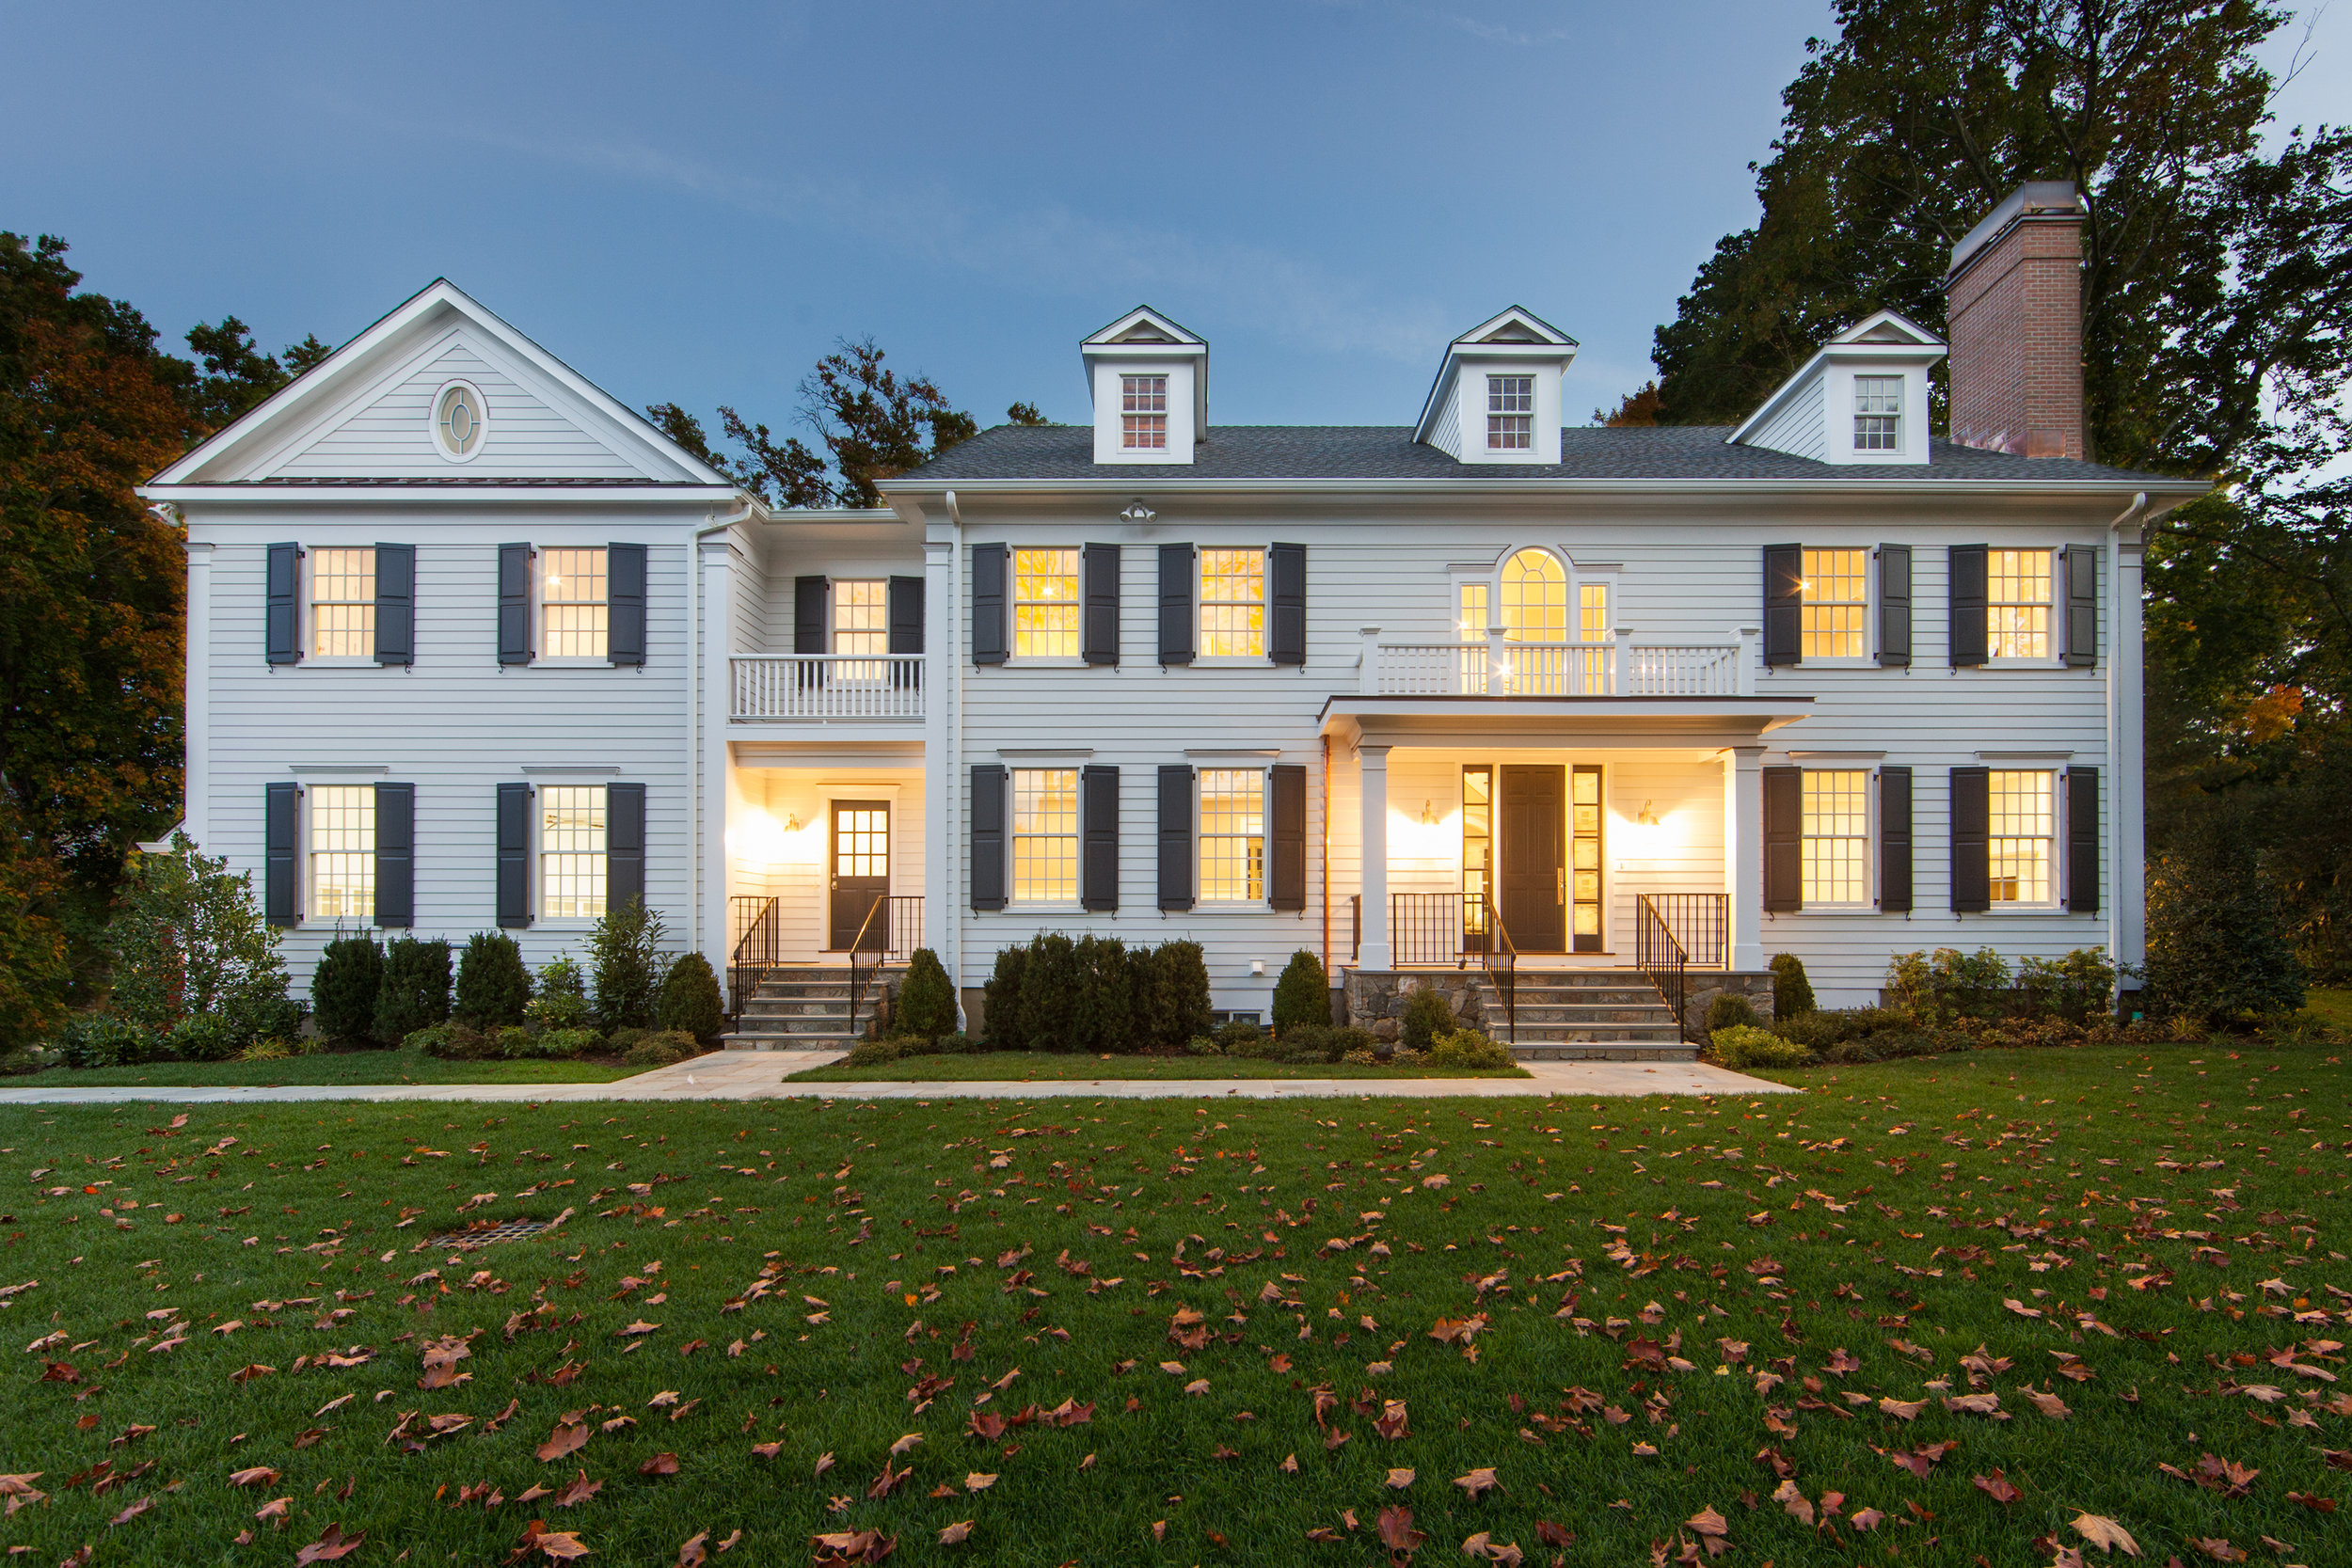 SOLD  3 Bradford Road Scarsdale, New York   Luxurious New Construction in Scarsdale's Quaker Ridge. Represented the Seller as the Listing Agent  (2017)